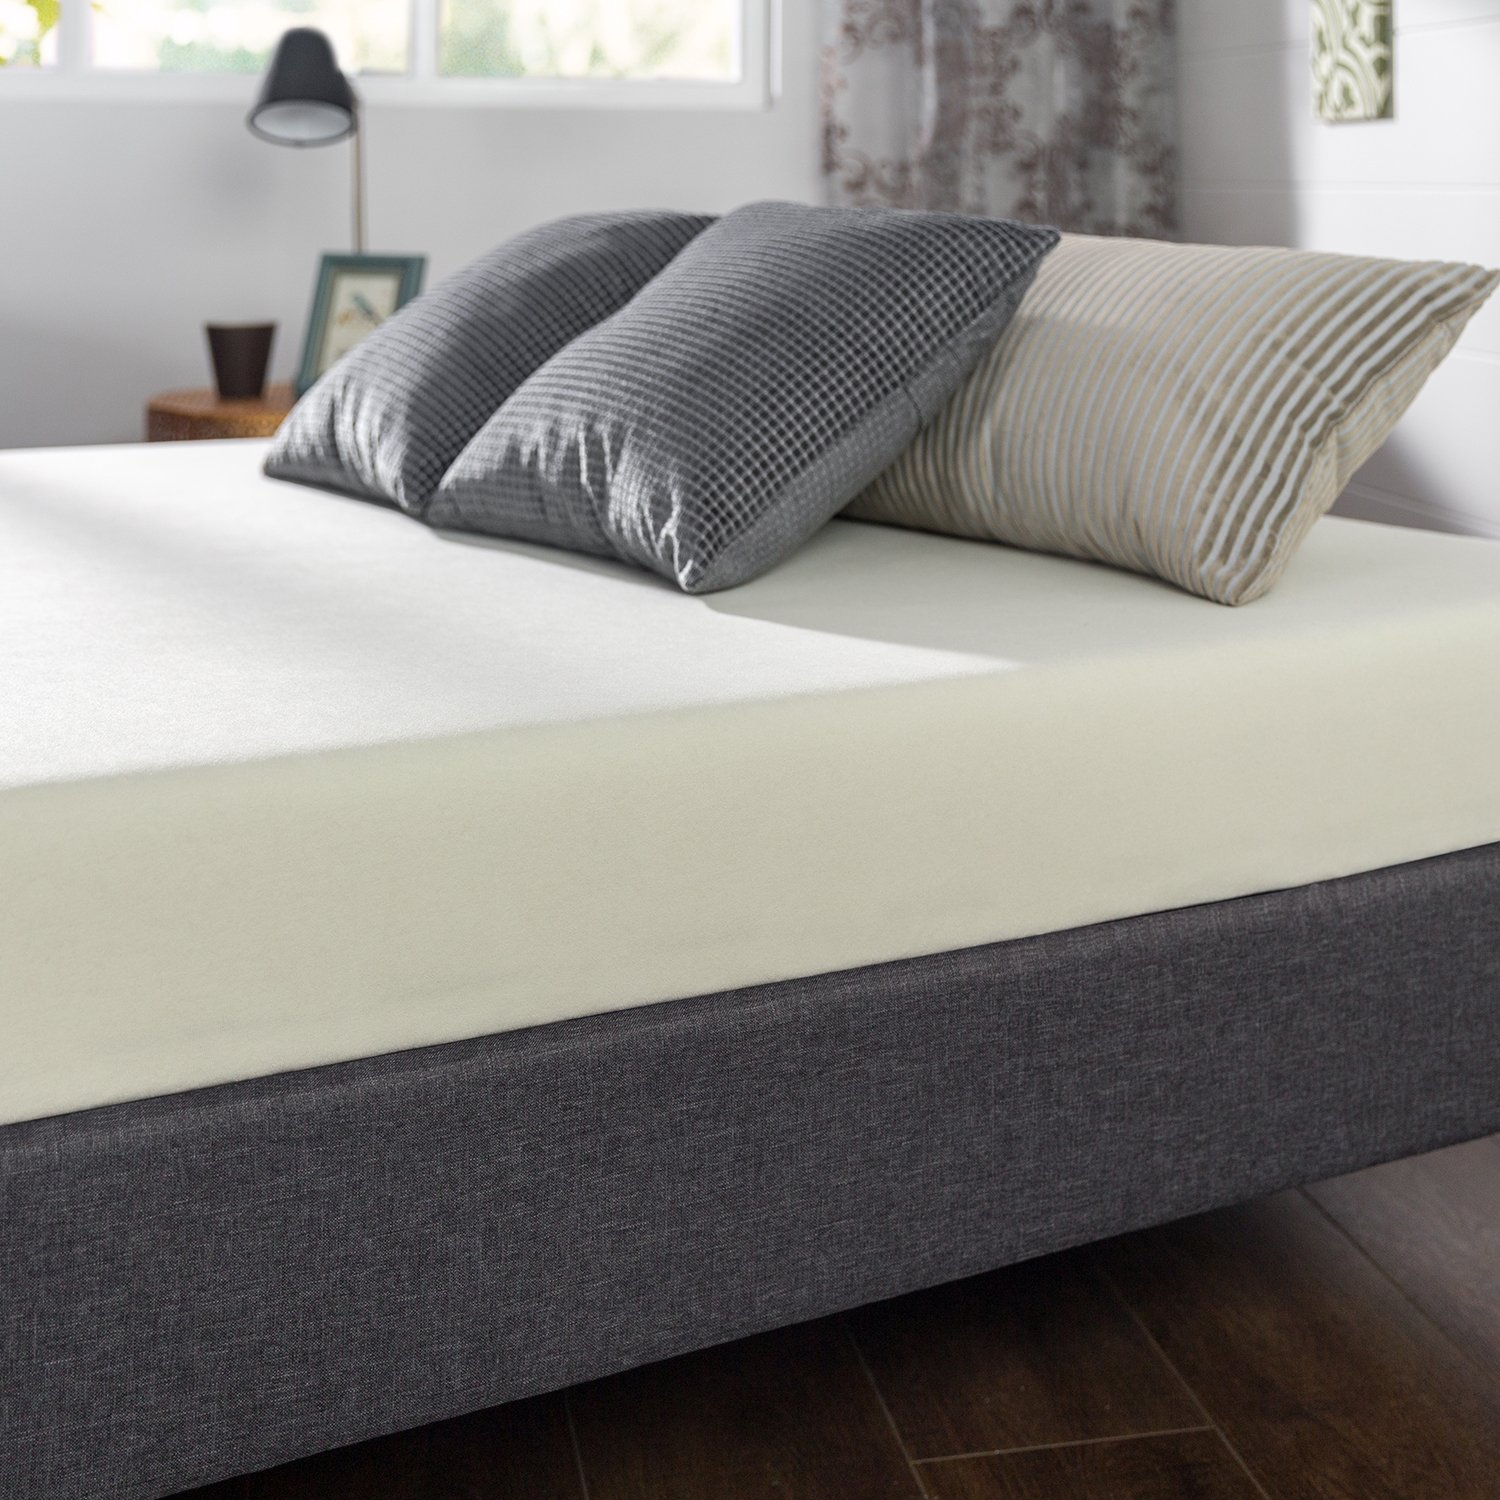 amazon com zinus ultima comfort memory foam 6 inch mattress twin